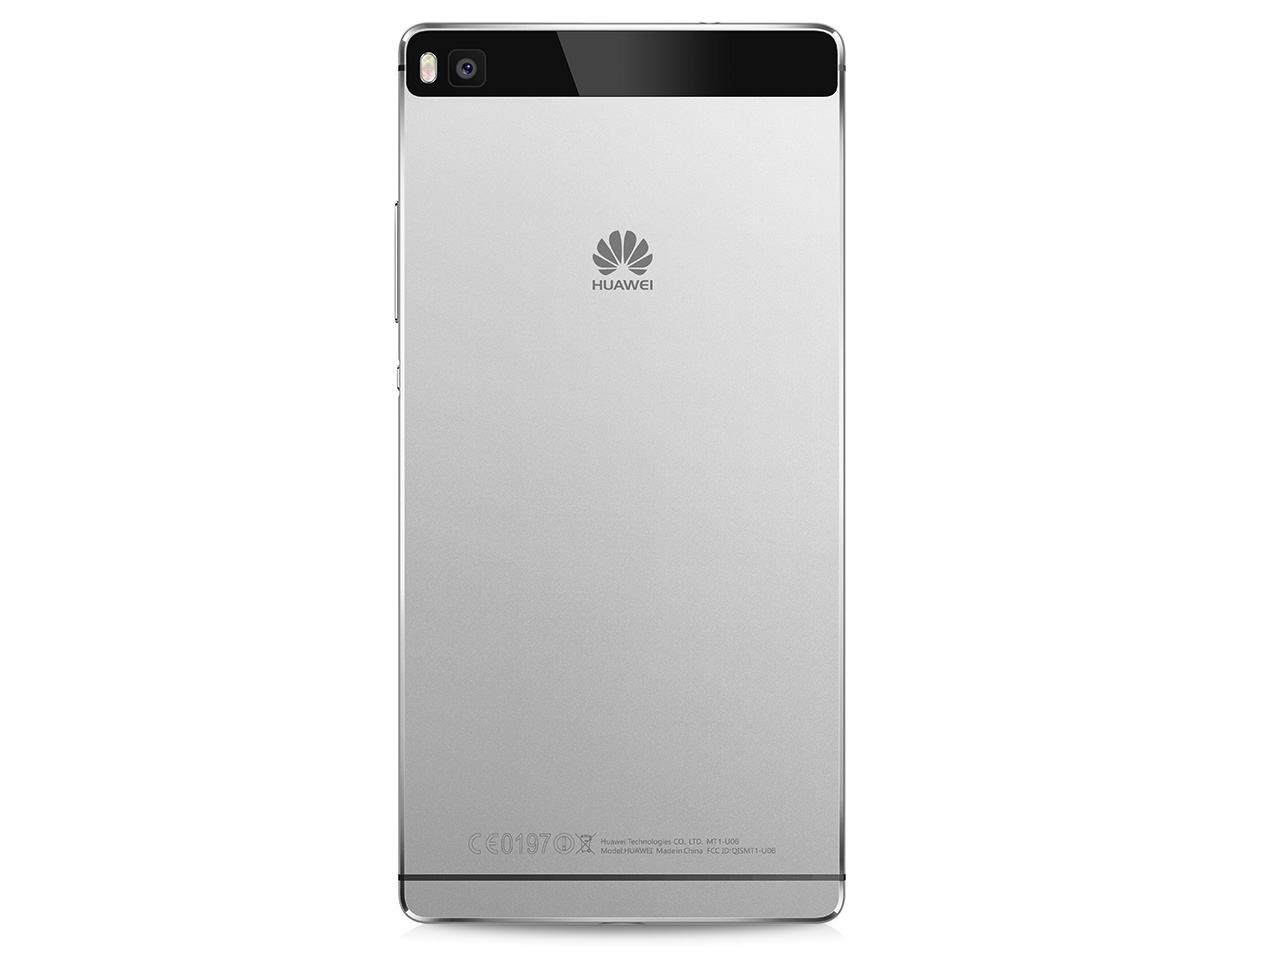 Huawei launches P8 with 13MP RGBW sensor and OIS: Digital